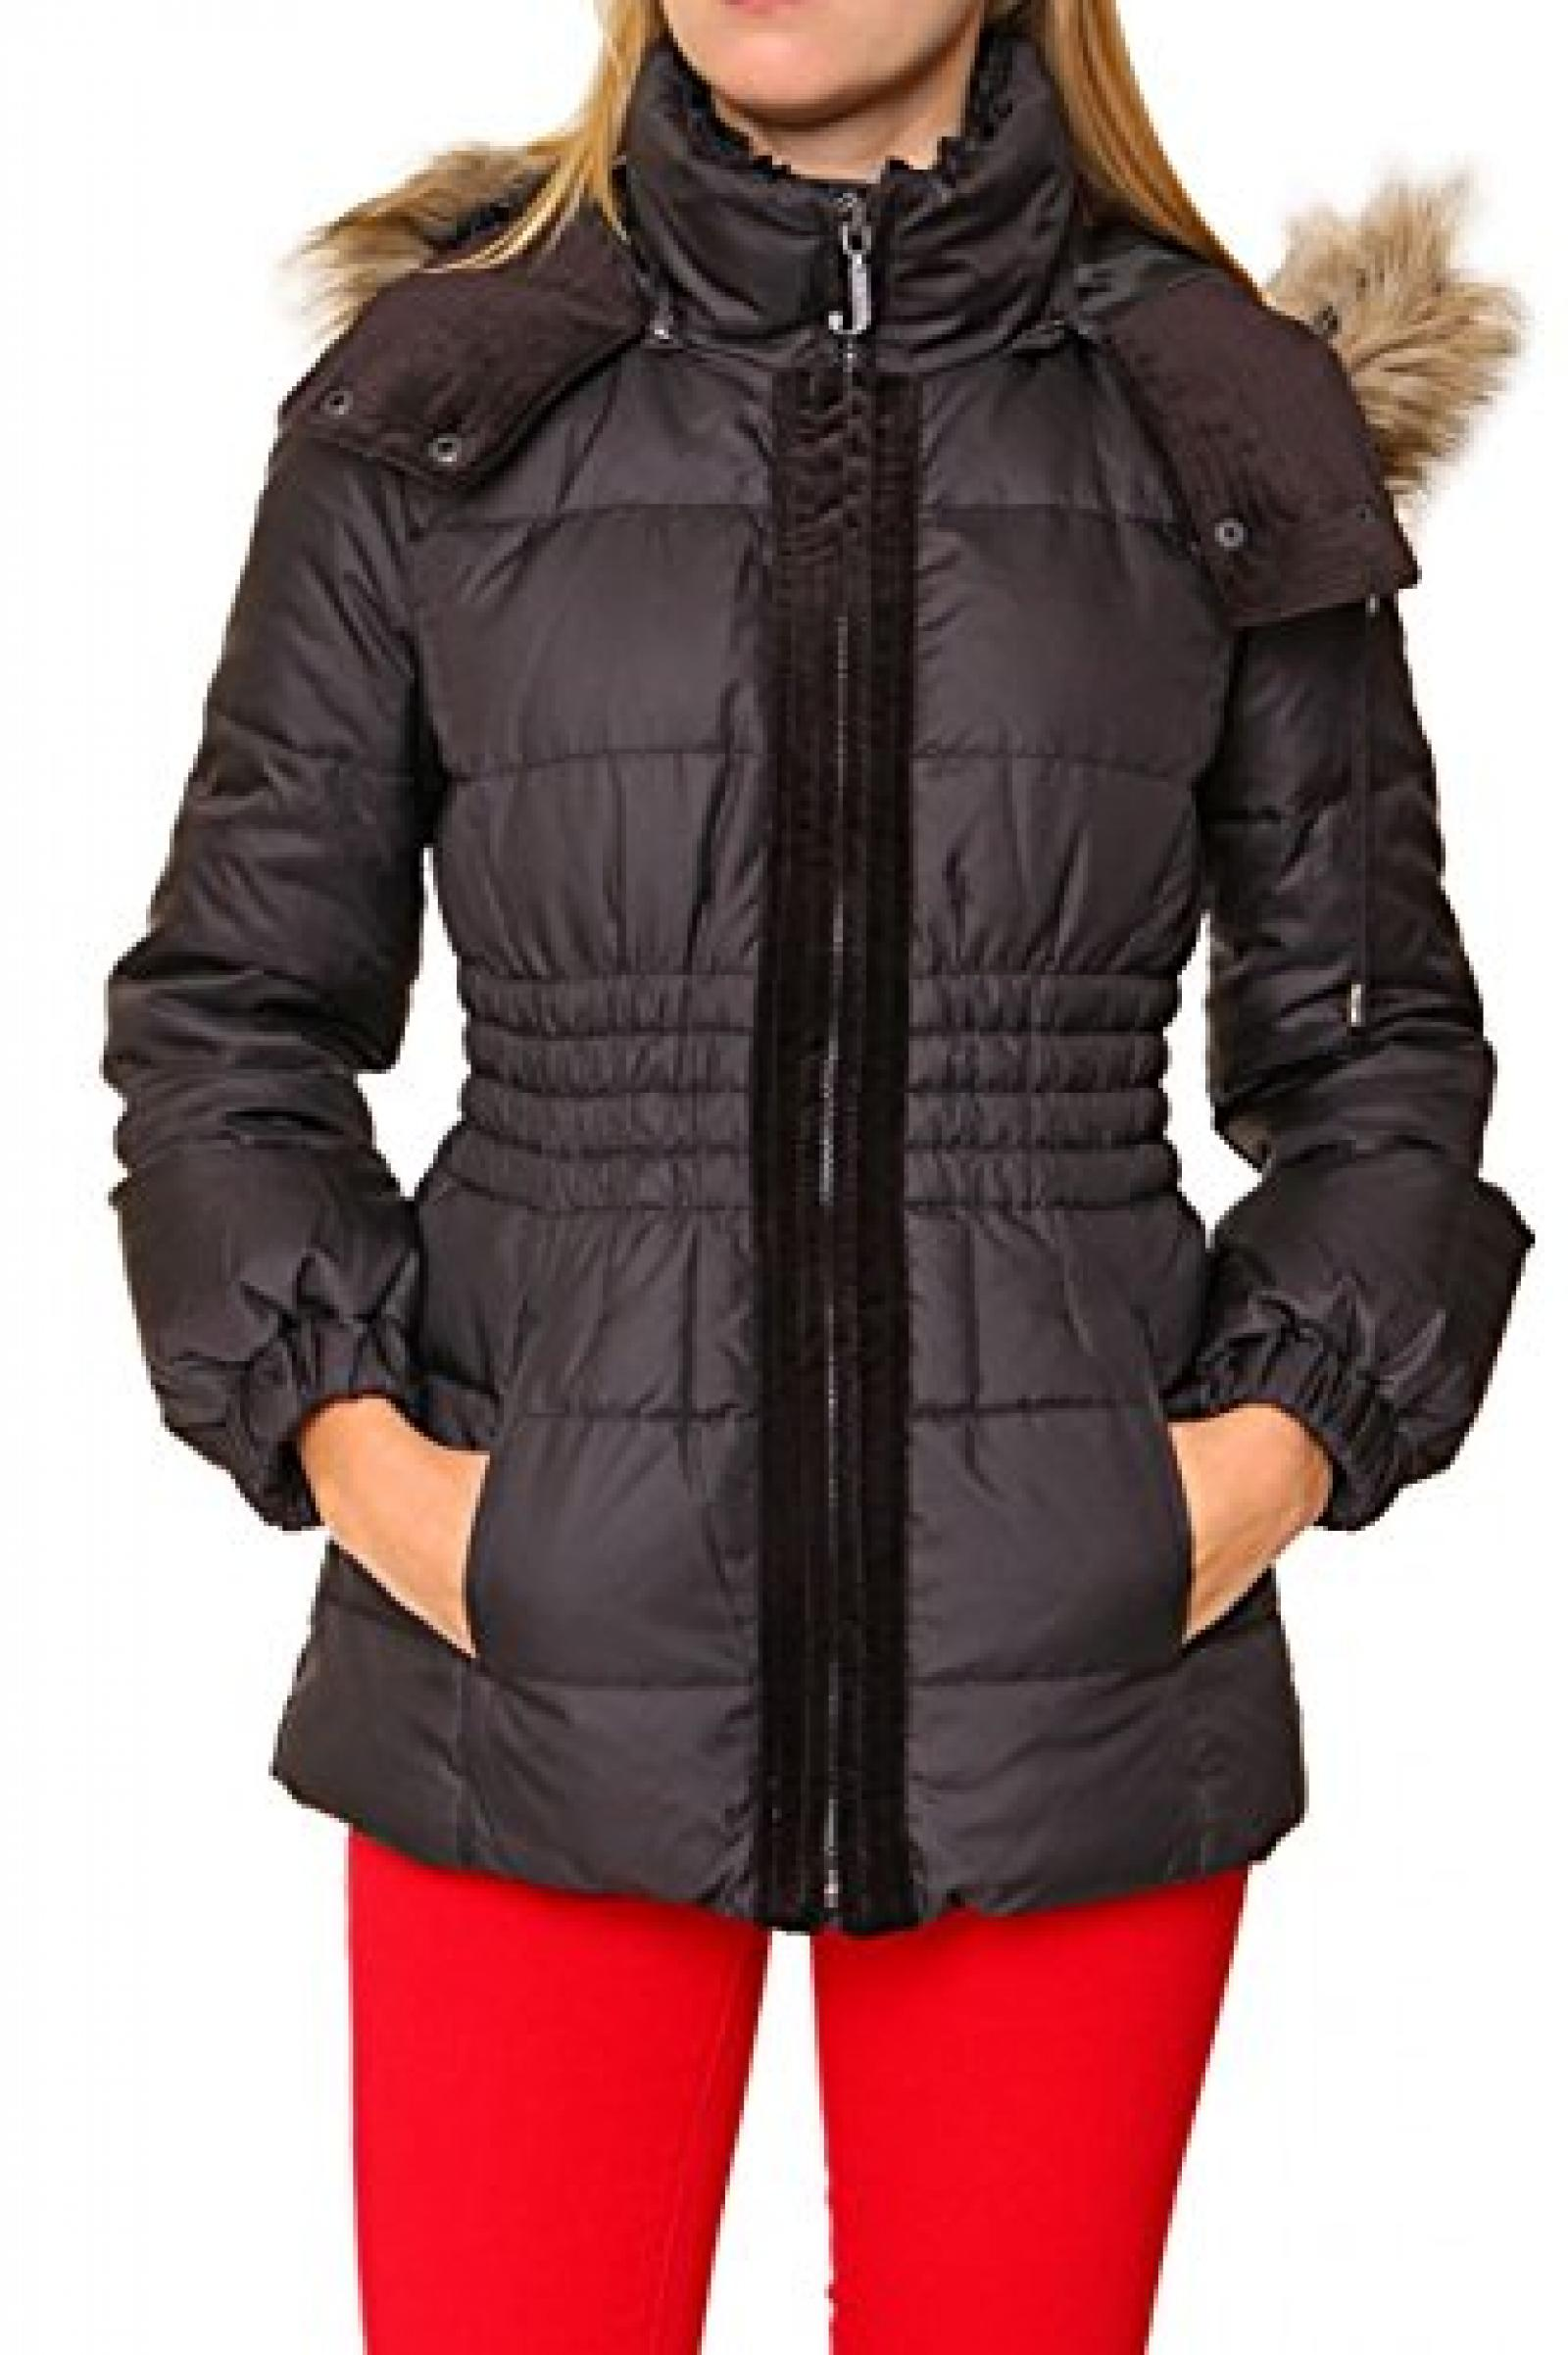 Juicy Couture Damen Jacke Winterjacke HD DIAMOND PUFFA, Farbe: Schwarz